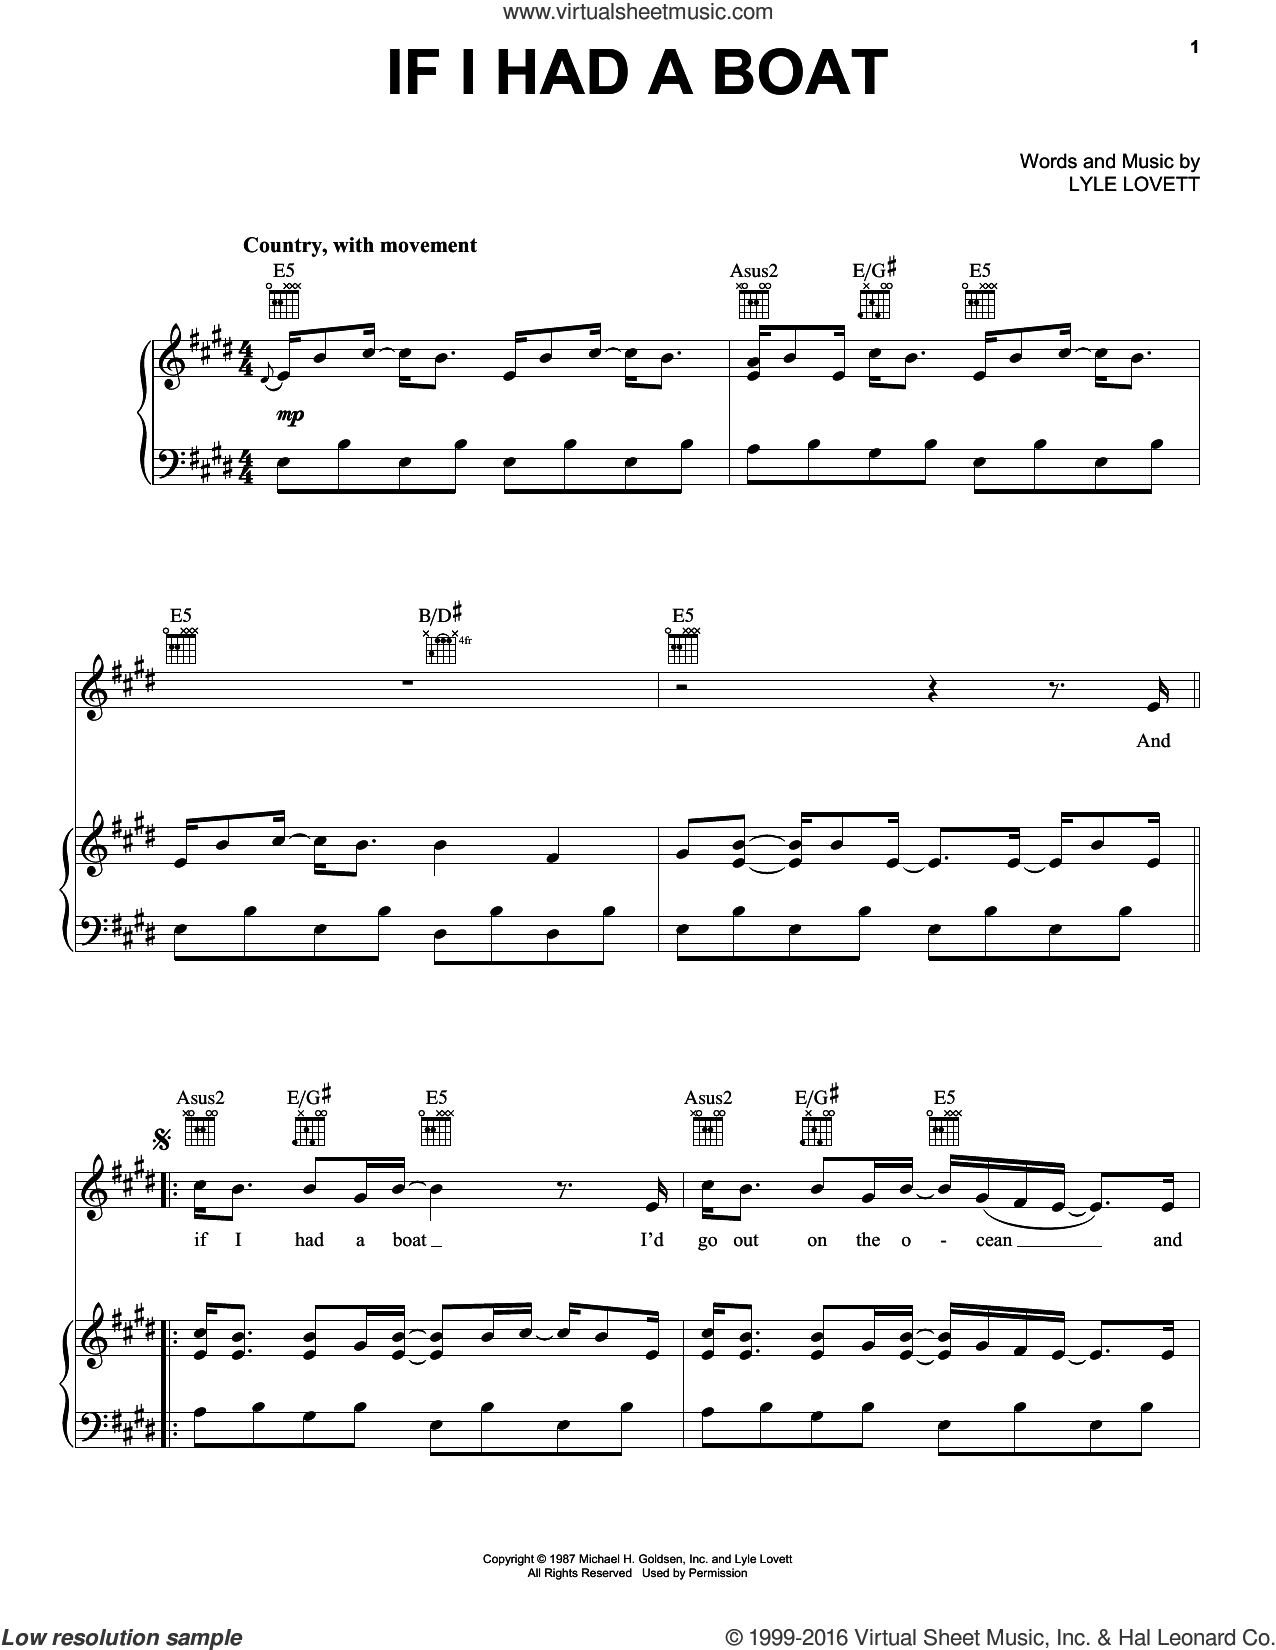 If I Had A Boat sheet music for voice, piano or guitar by Lyle Lovett